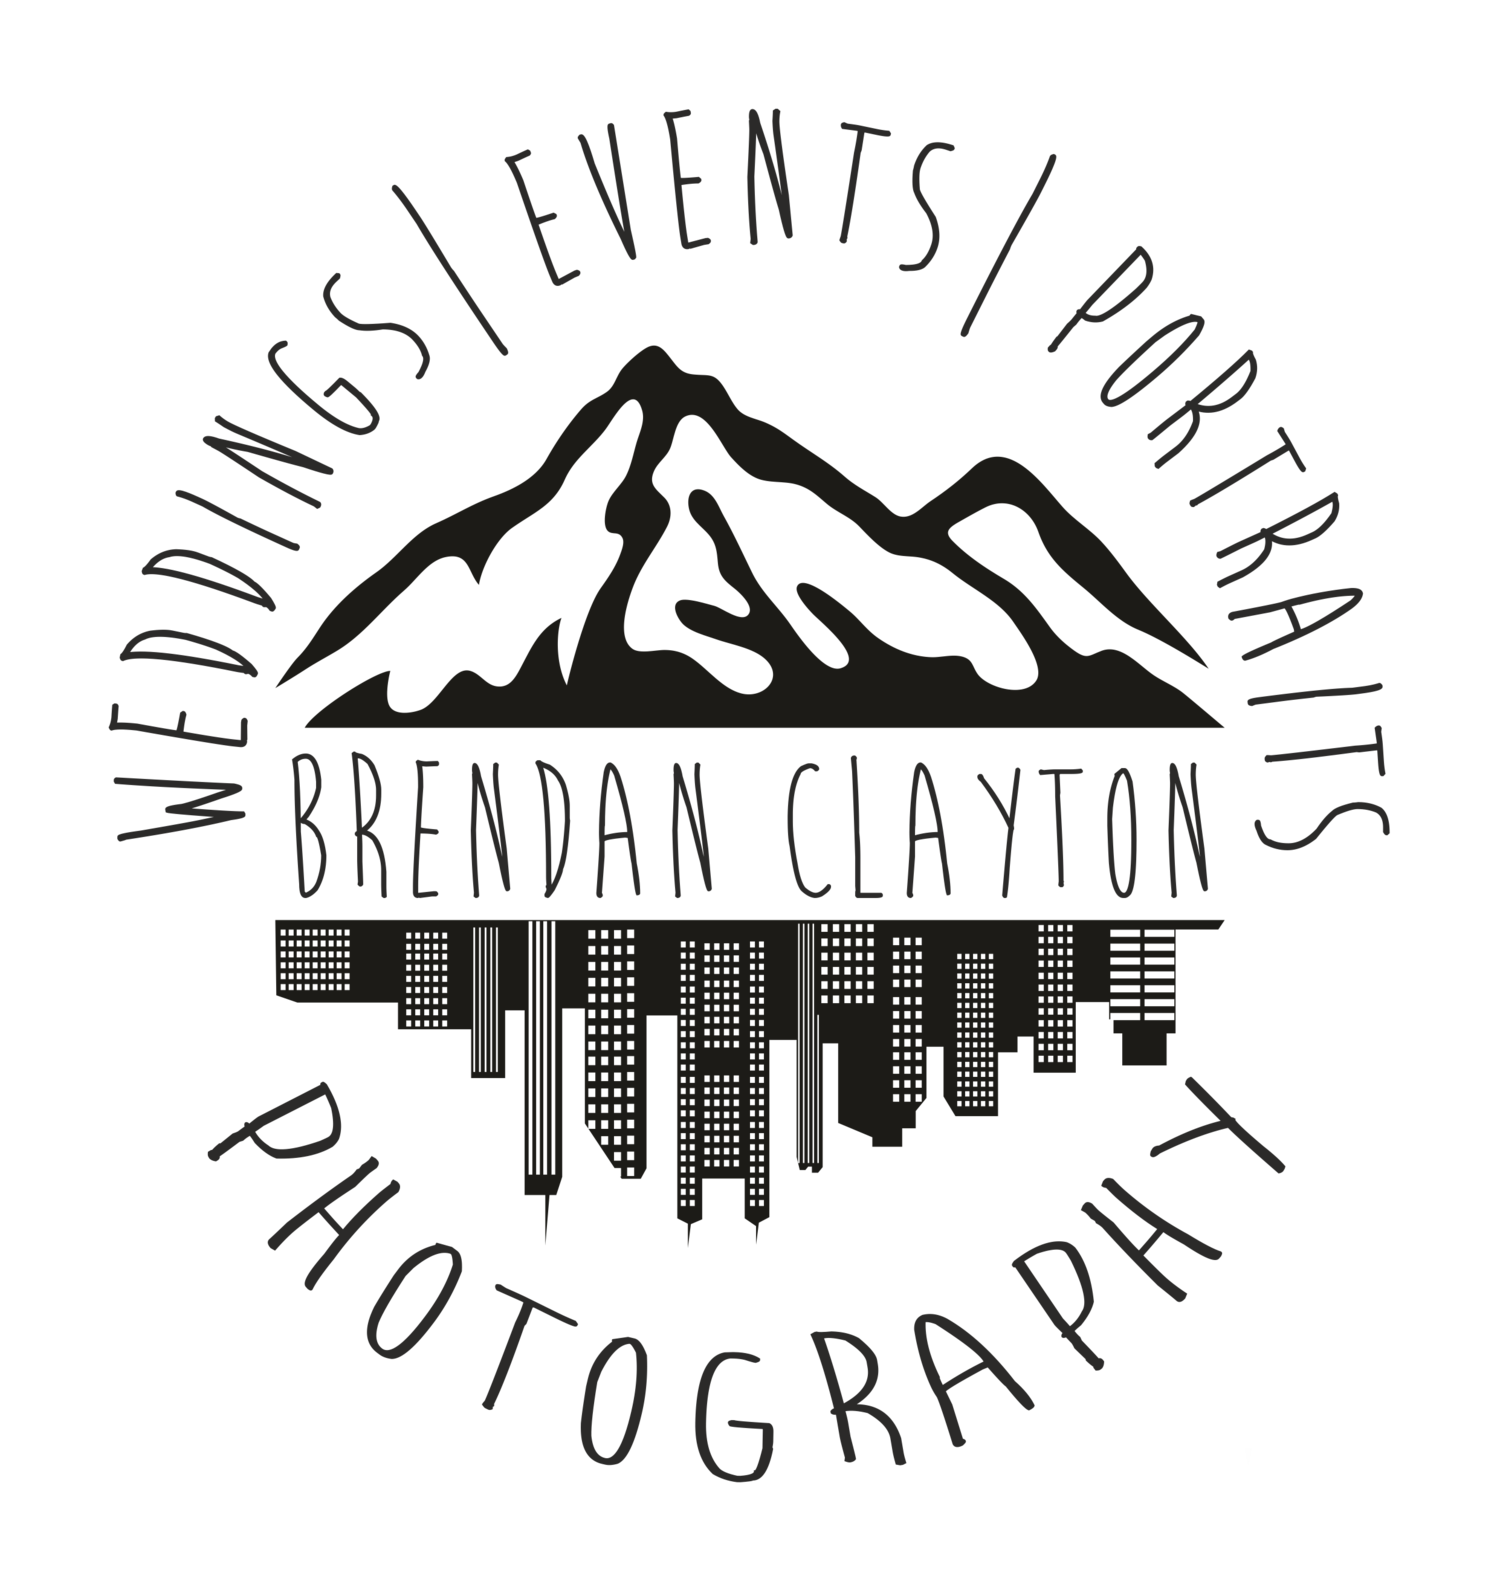 Brendan Clayton Photography